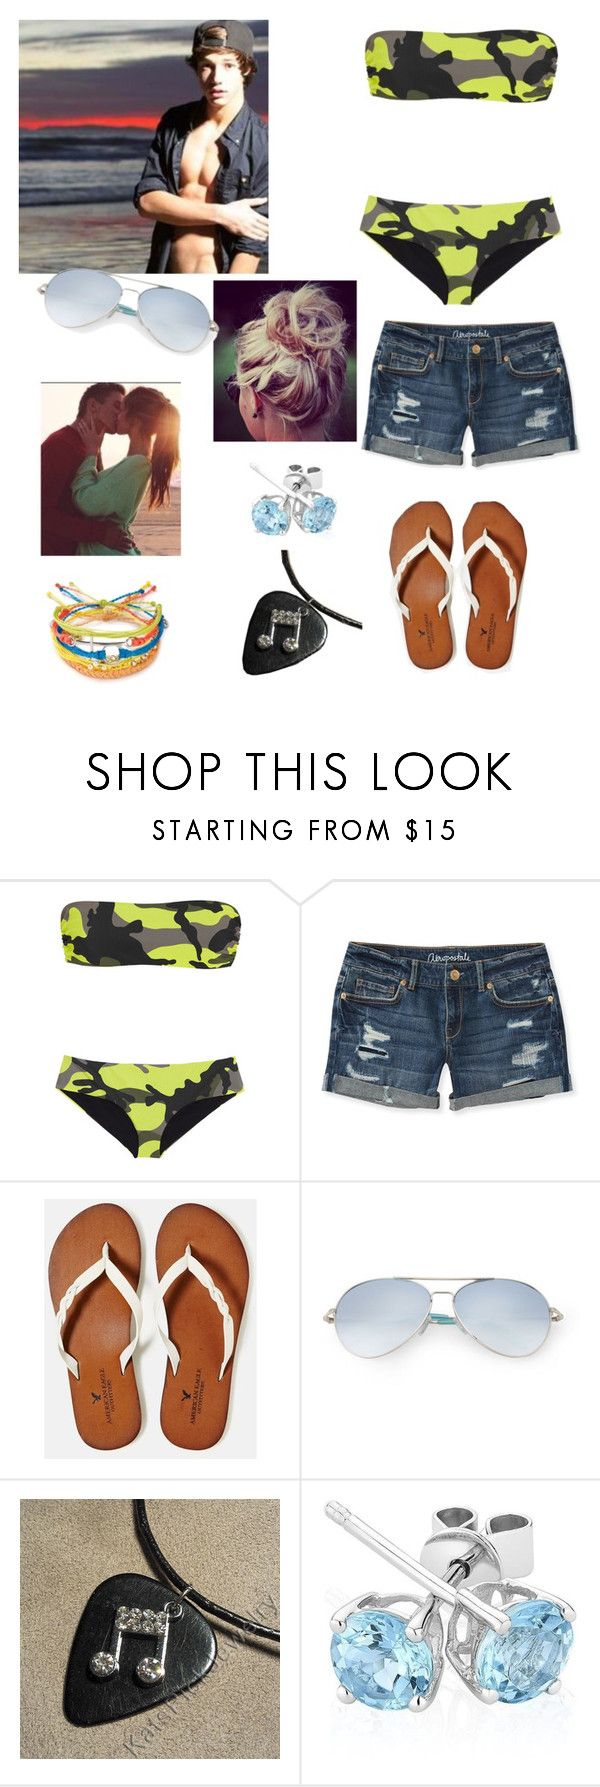 """""""day at the beach with Cameron Dallas"""" by cherylkinberg97 ❤ liked on Polyvore featuring Valentino, Aéropostale, American Eagle Outfitters, Matthew Williamson, Reeds Jewelers, Pura Vida, Summer, beach and CameronDallas"""